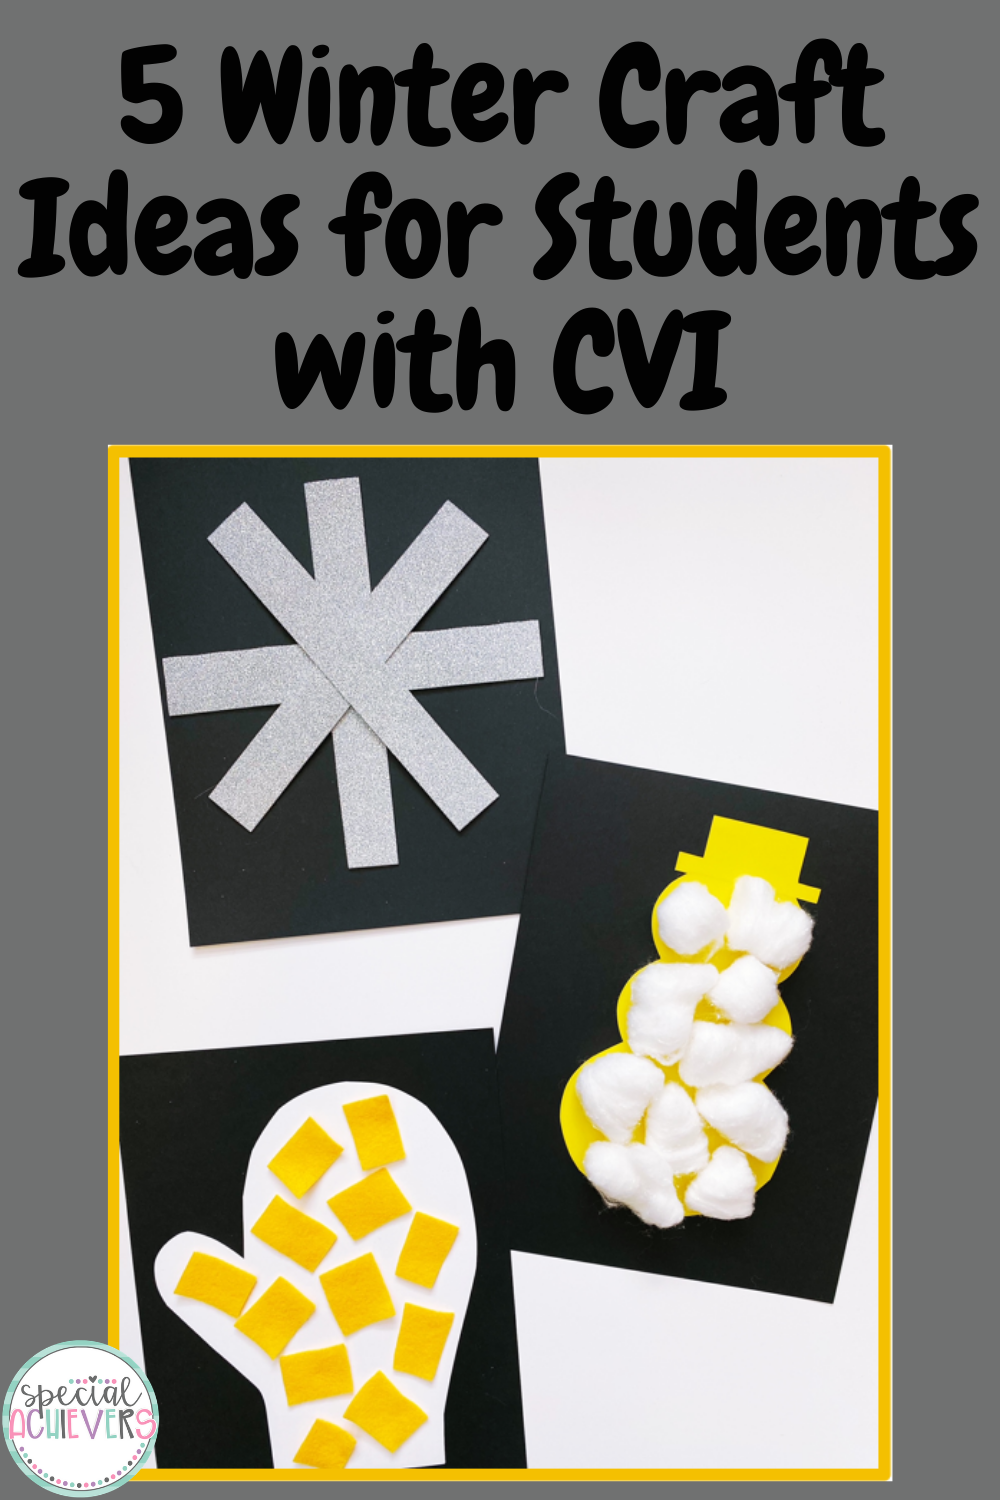 """The text at the top reads: """"5 Winter Craft Ideas for Students with CVI."""" The image shows a completed snowflake craft, snowman craft, and mitten craft."""